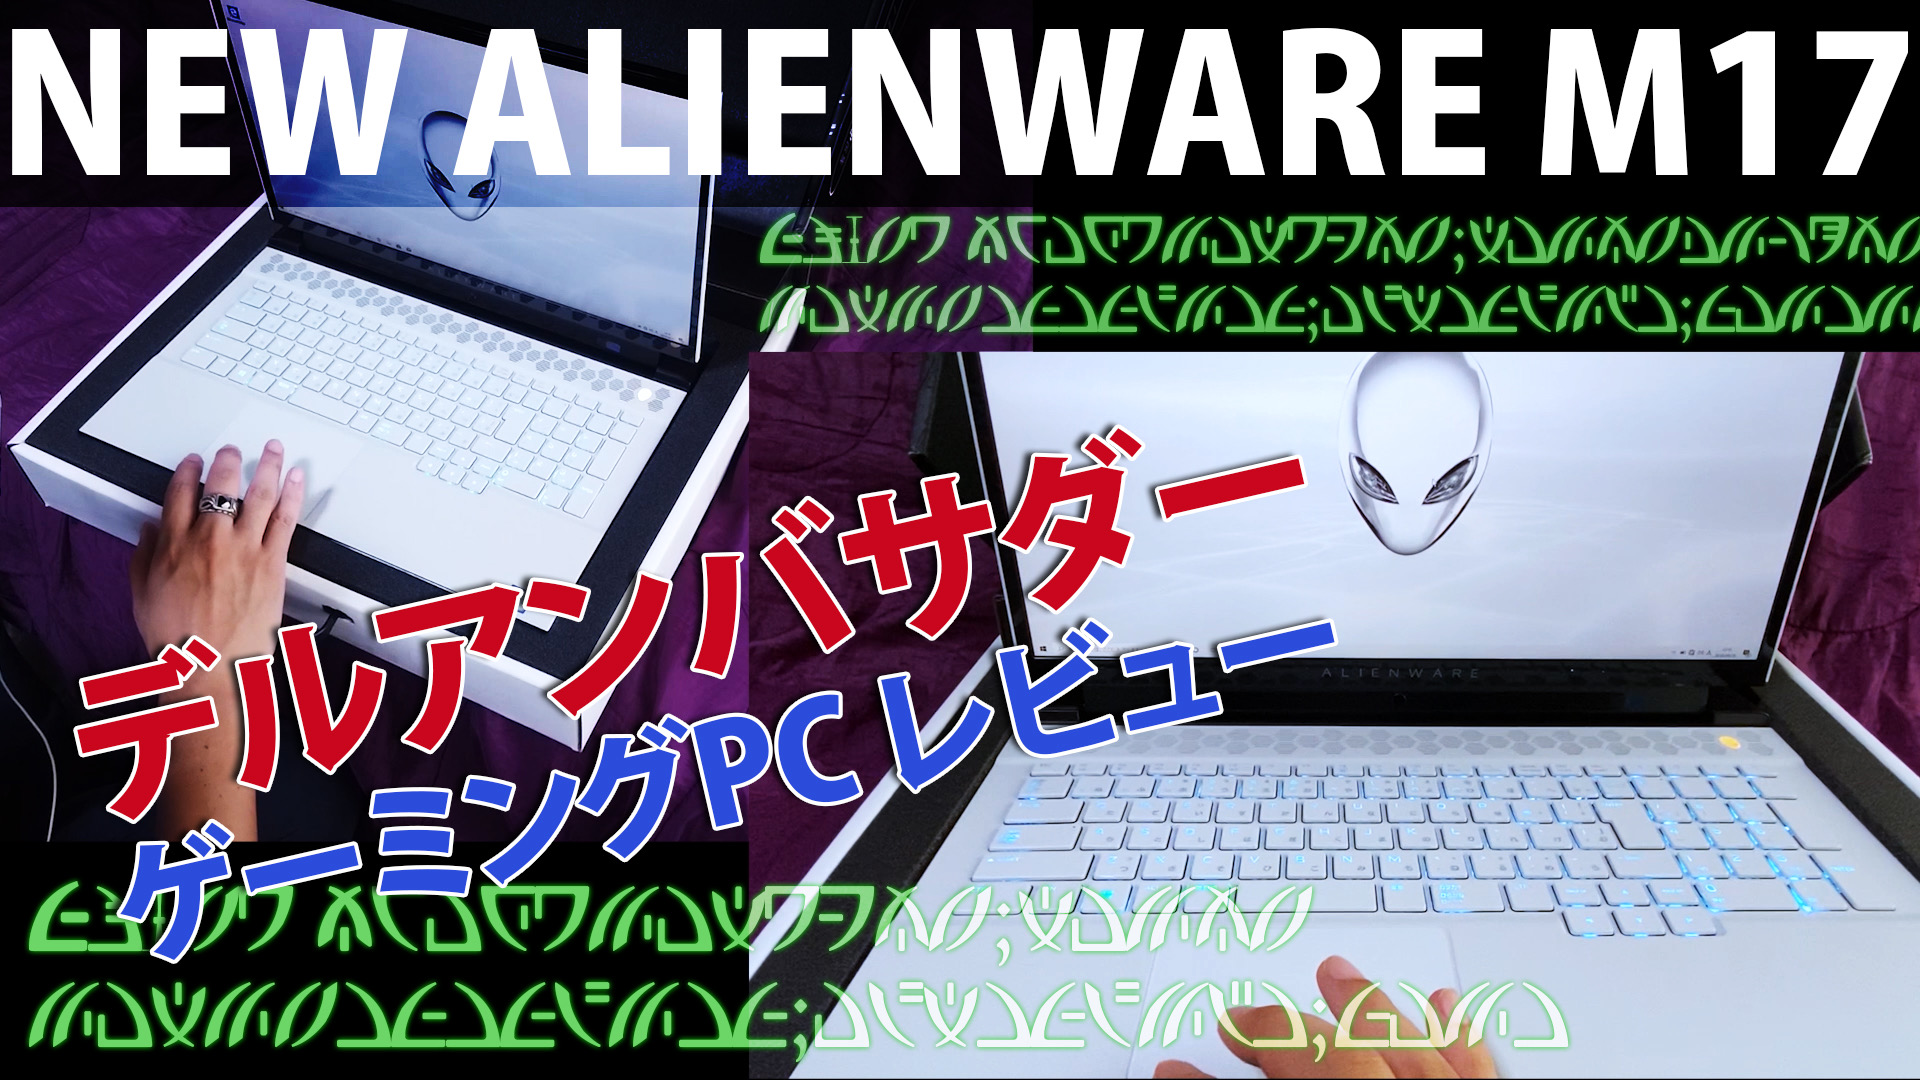 """Review """"Gaming Notebook"""" New ALIENWARE M17 for a month from today!DELL Ambassador Program Sep 29 2019"""